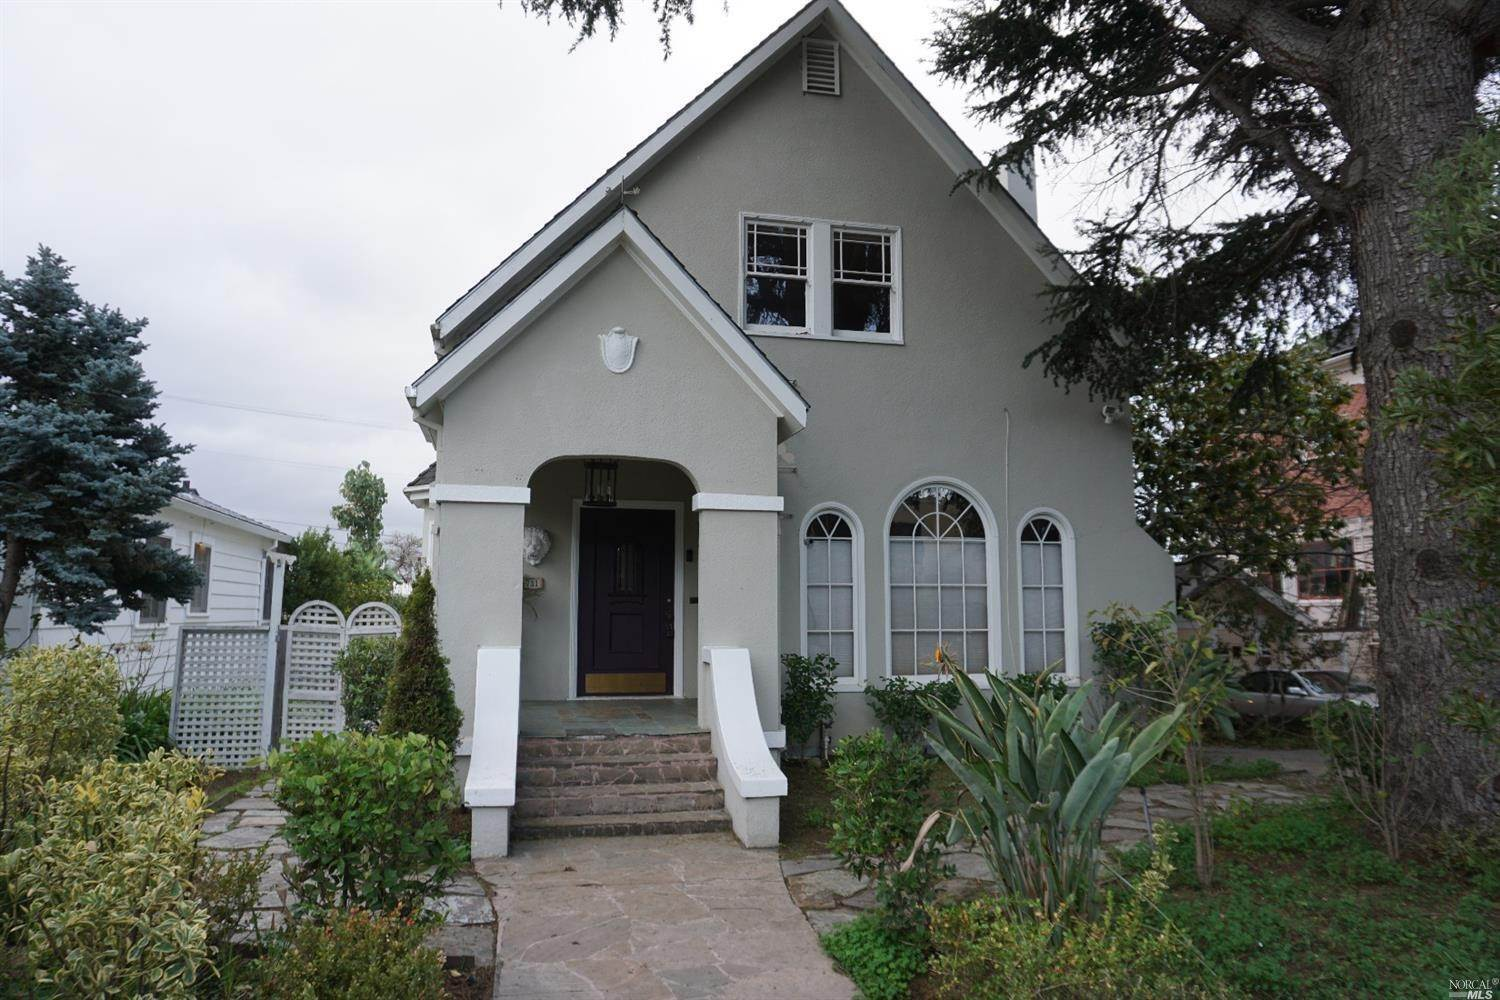 Single Family Homes for Sale at 733 York Street, Vallejo Vallejo, California 94590 United States